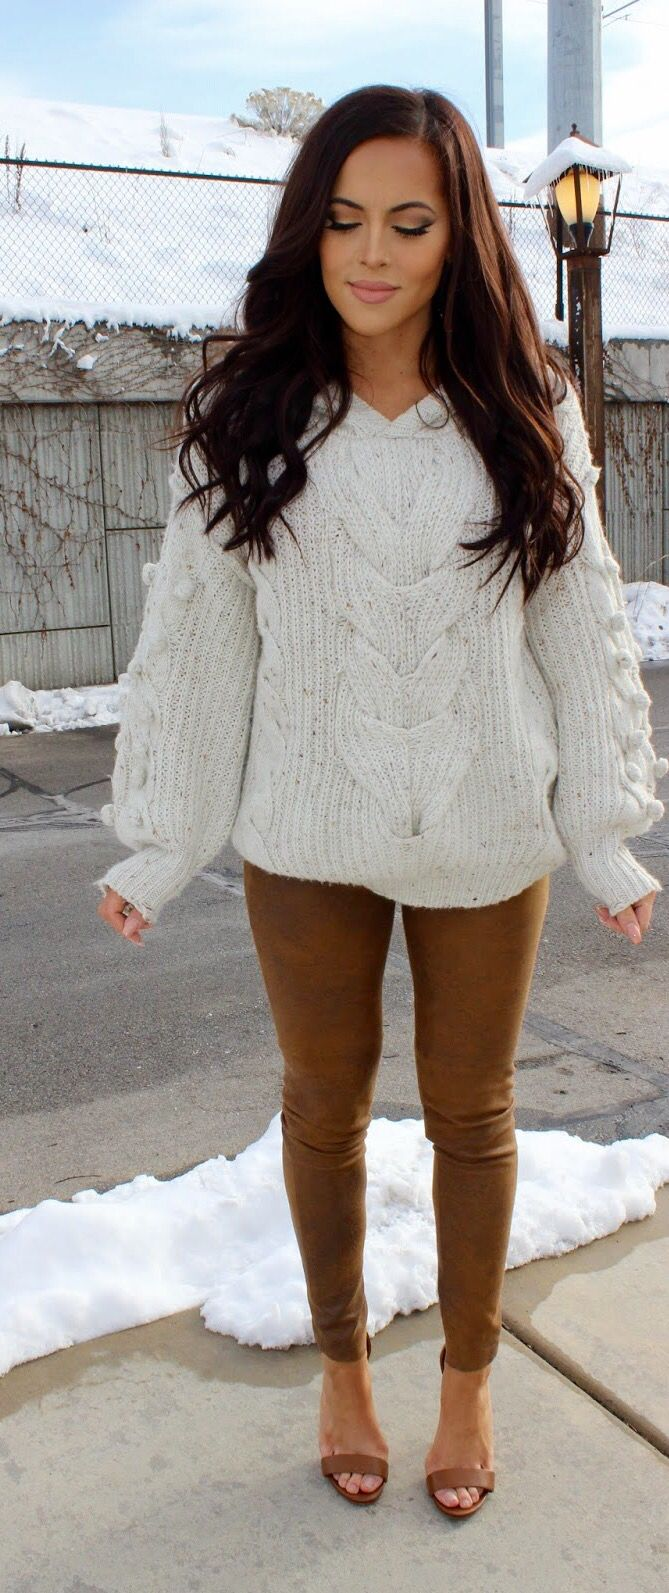 Neutrals: cream cable knit sweater and brown faux leather pants/leggings. Love this simple comfy outfit look. Dark brown hair with messy wsves.